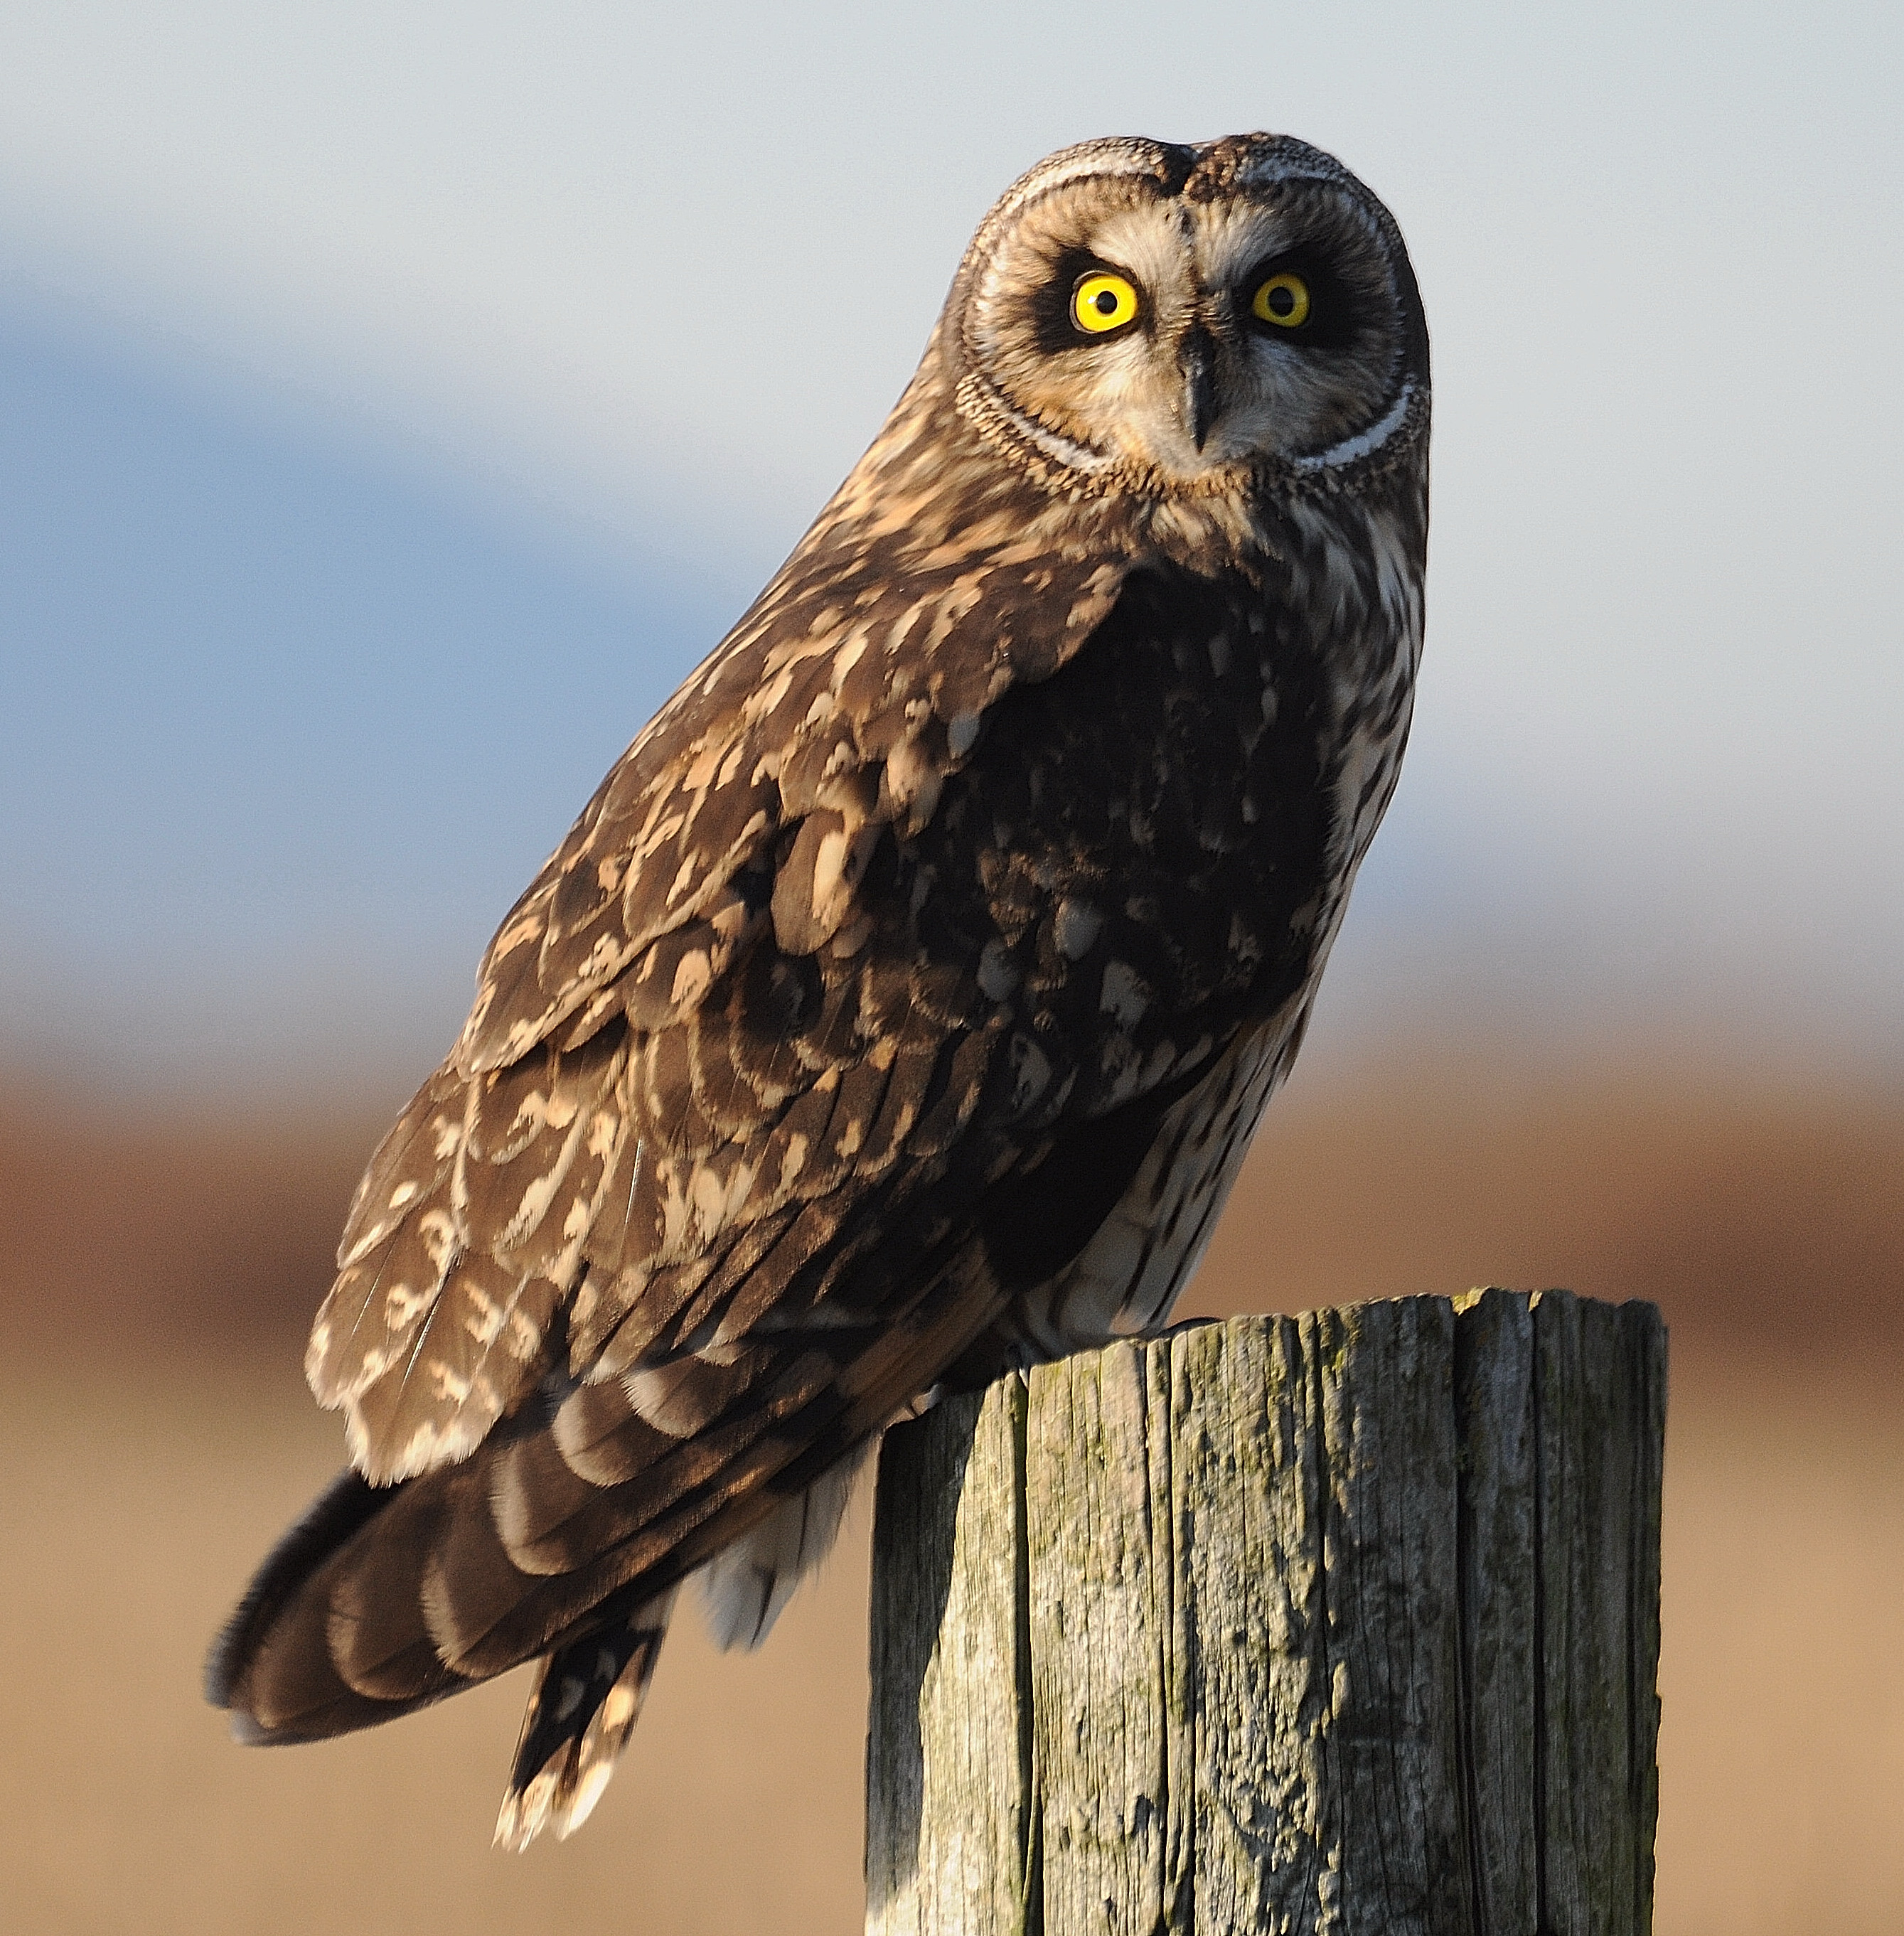 Short-eared Owl photo: Joe Meche